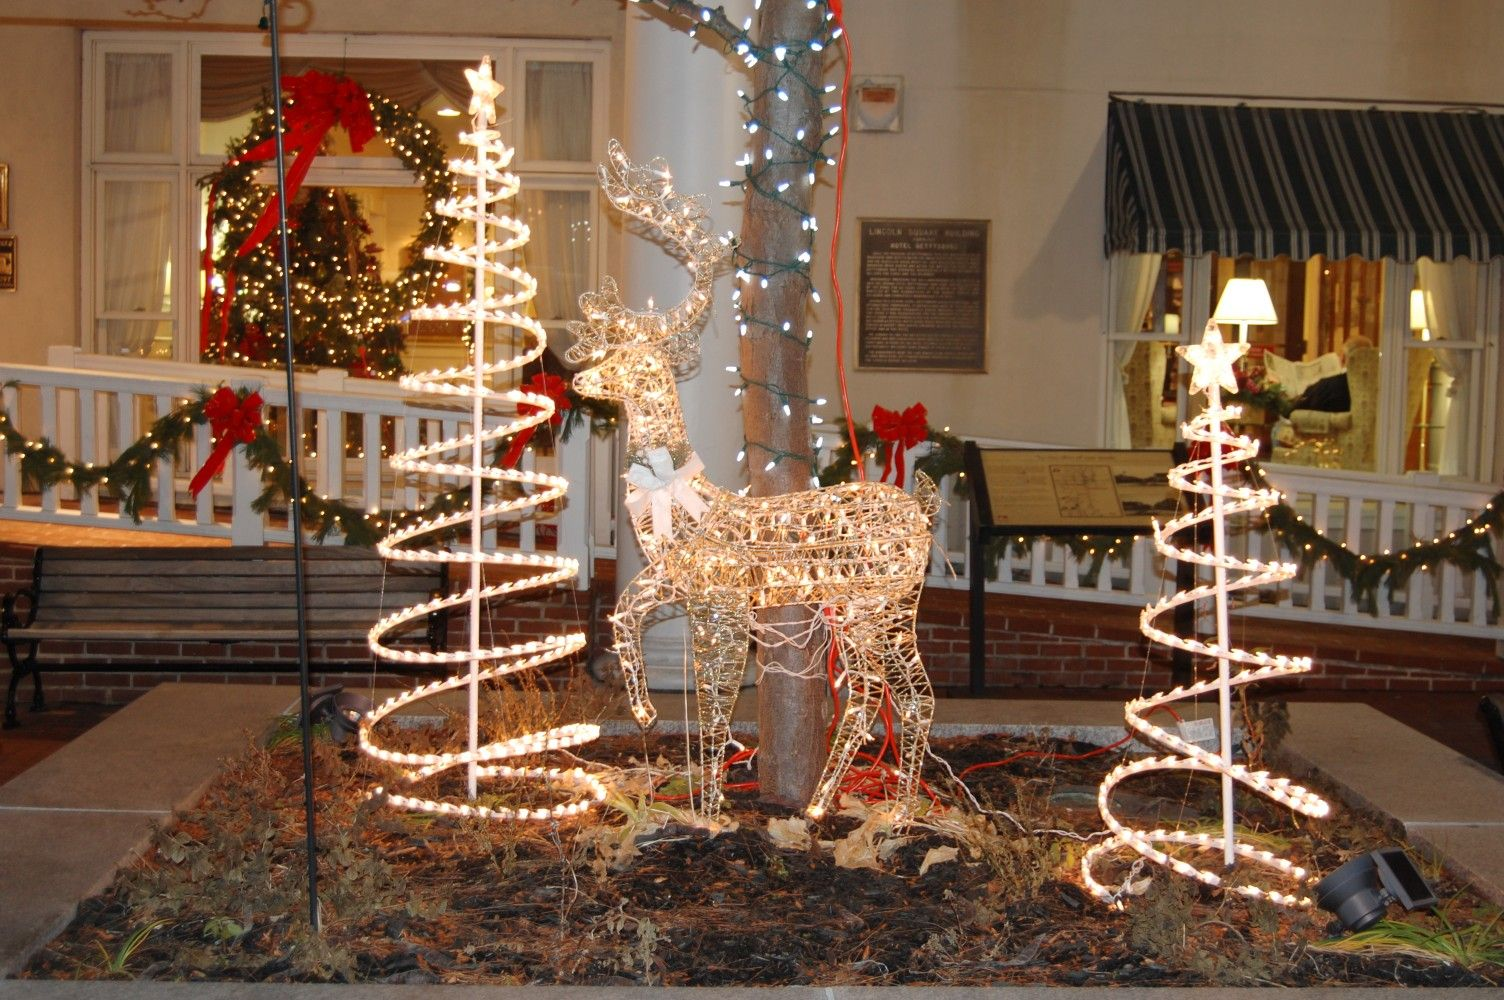 The Gettysburg Hotel also has a few decorations around its street level.